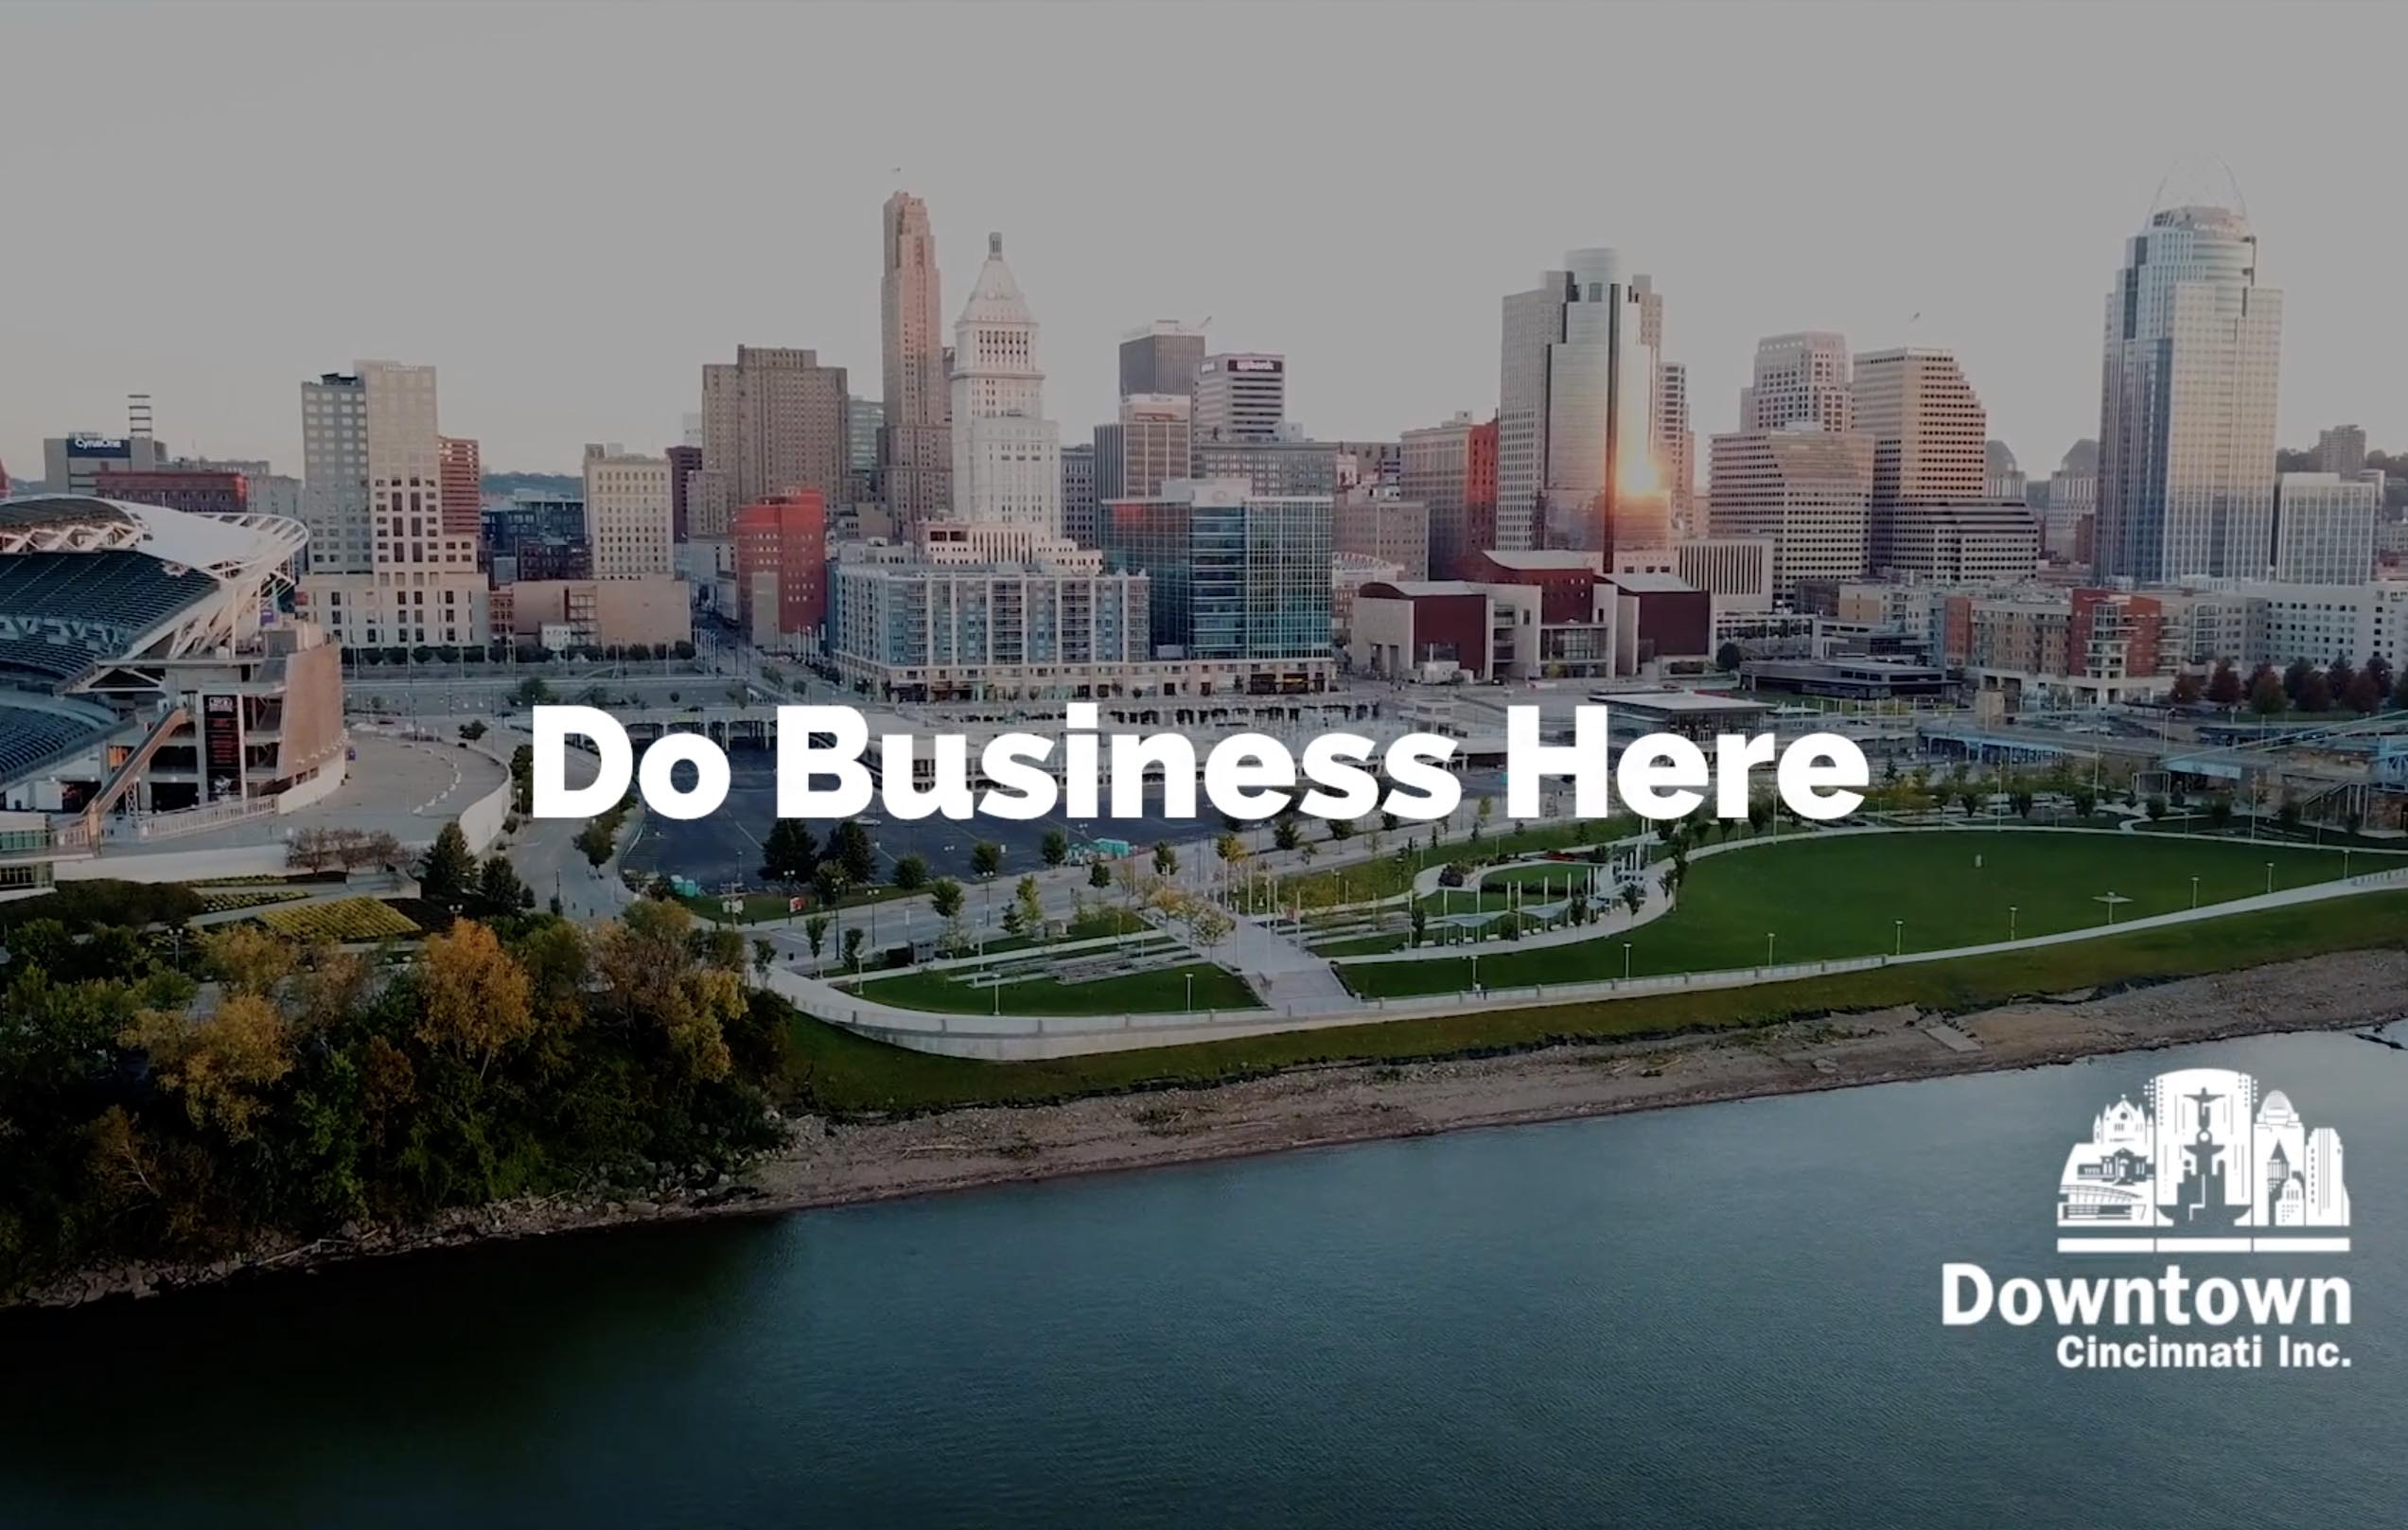 Downtown Cincinnati Inc Promotional Video